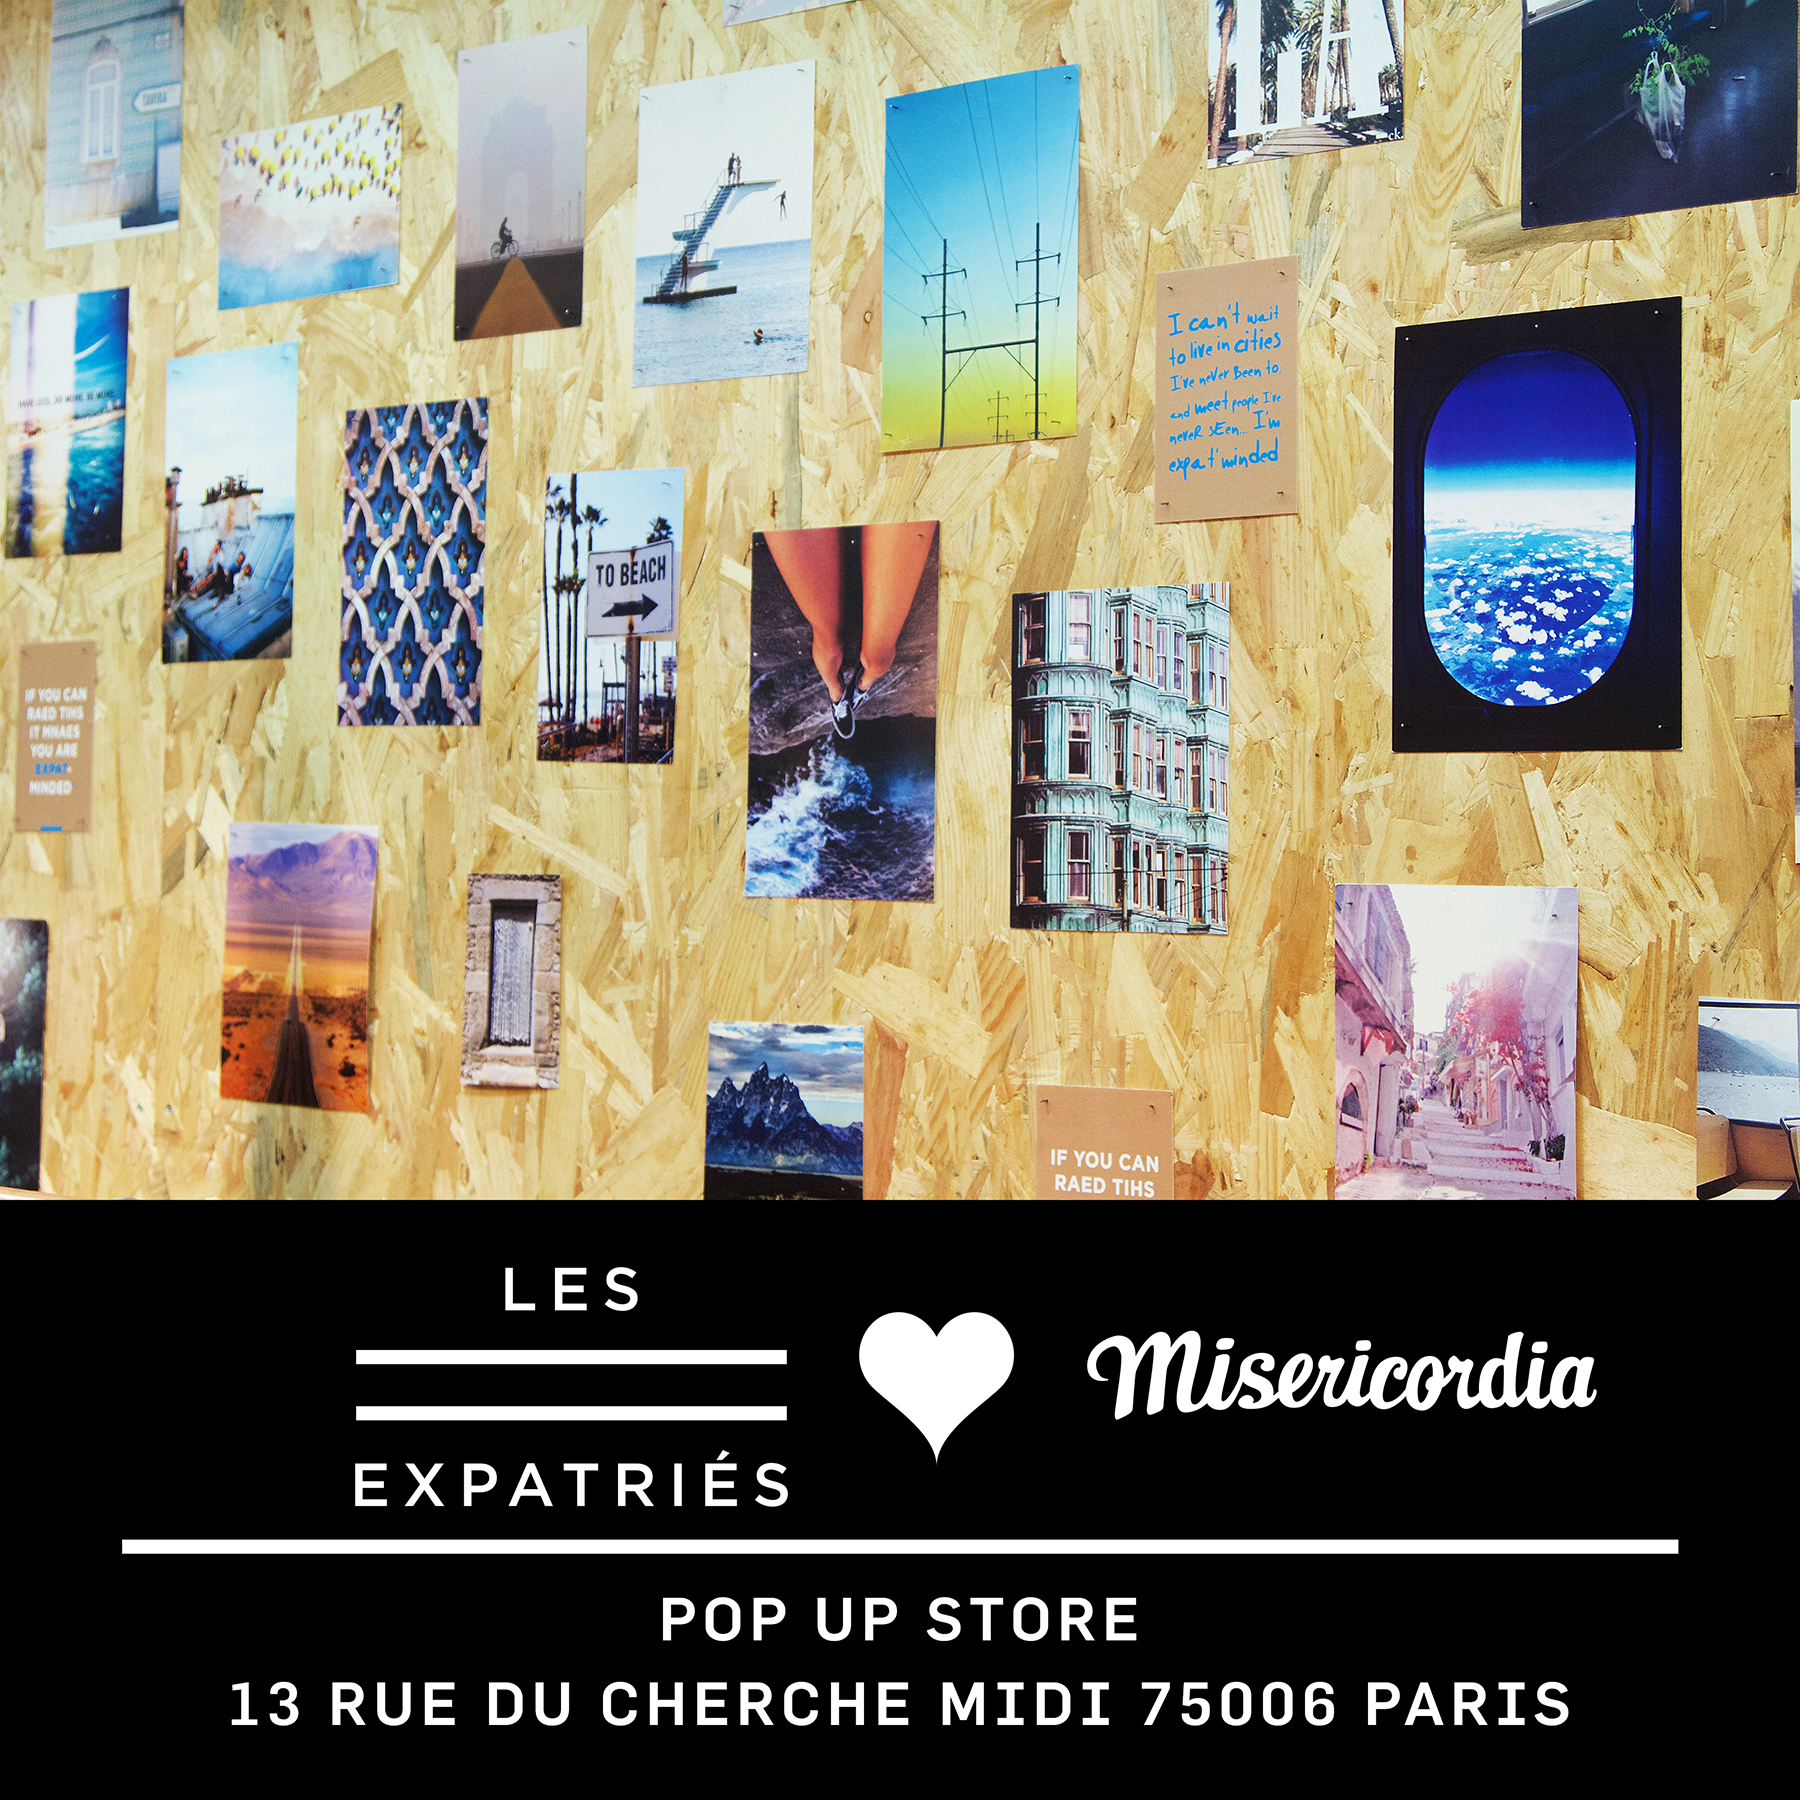 pop-up-store-les-expatries-misericordia-rue-cherche-midi-collection-mode-paris-26